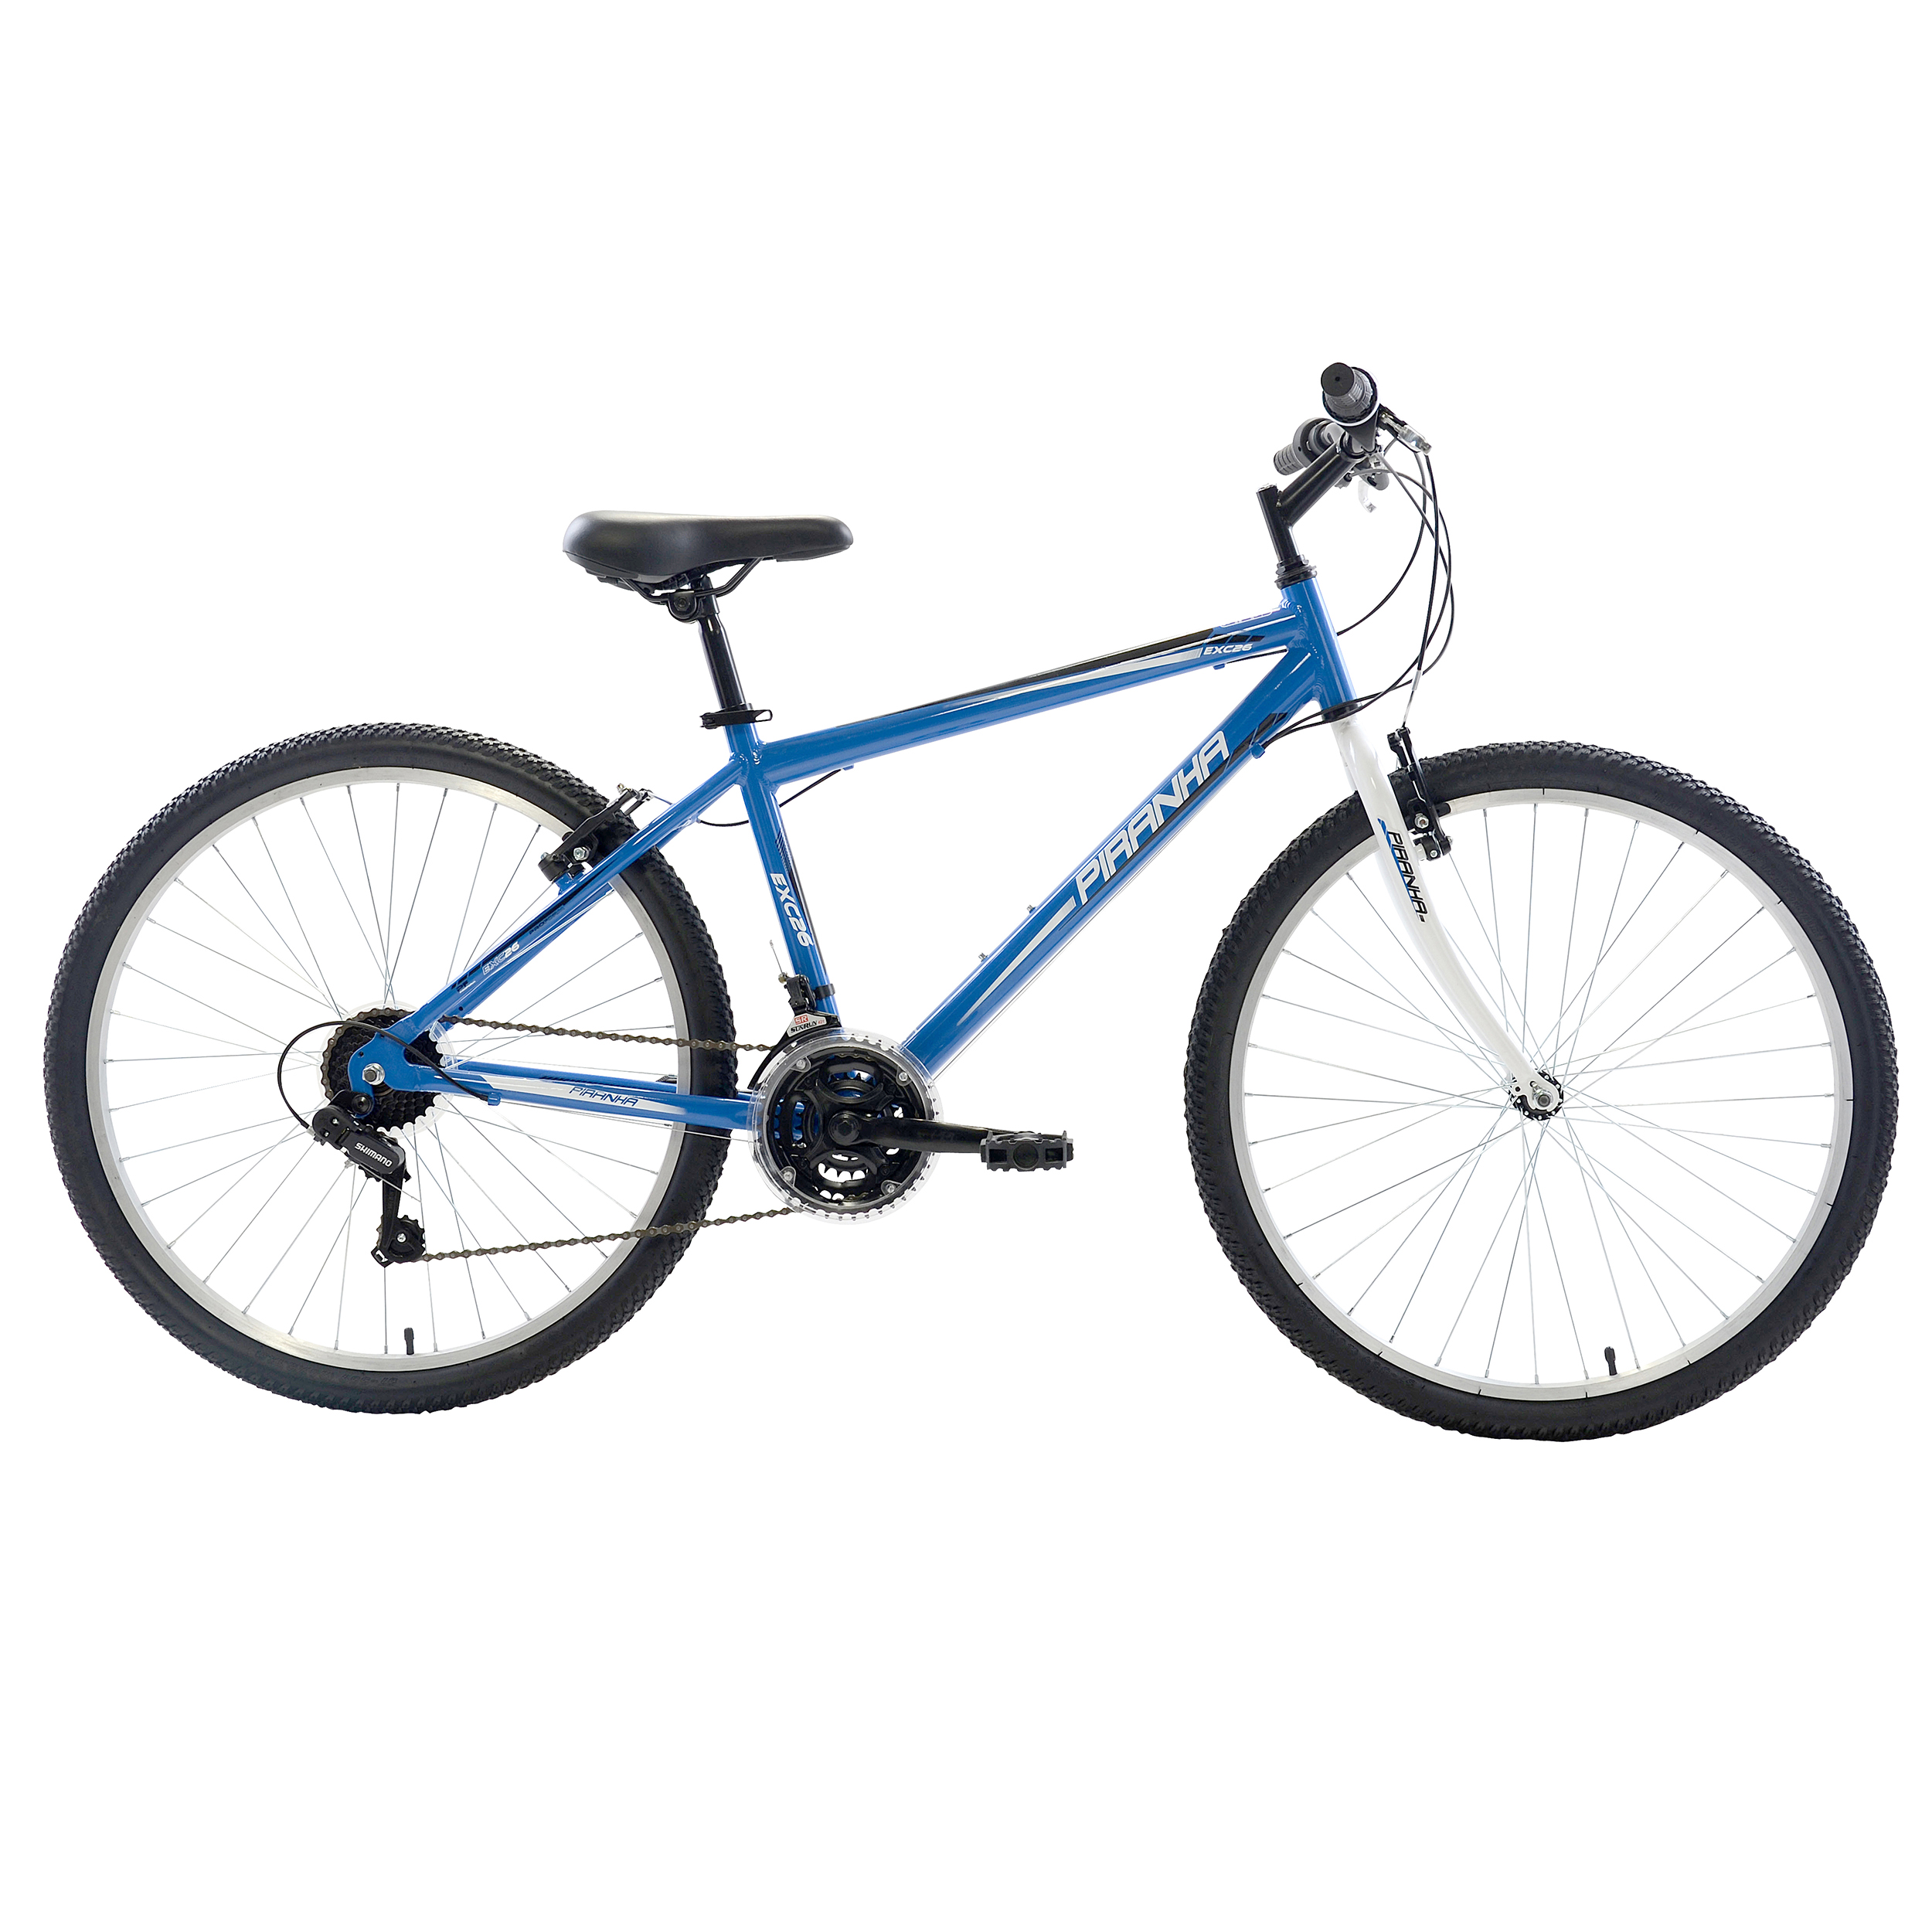 Piranha 21 Speed Rigid MTB - 26 inch wheels - 16 inch frame - Men's Bike